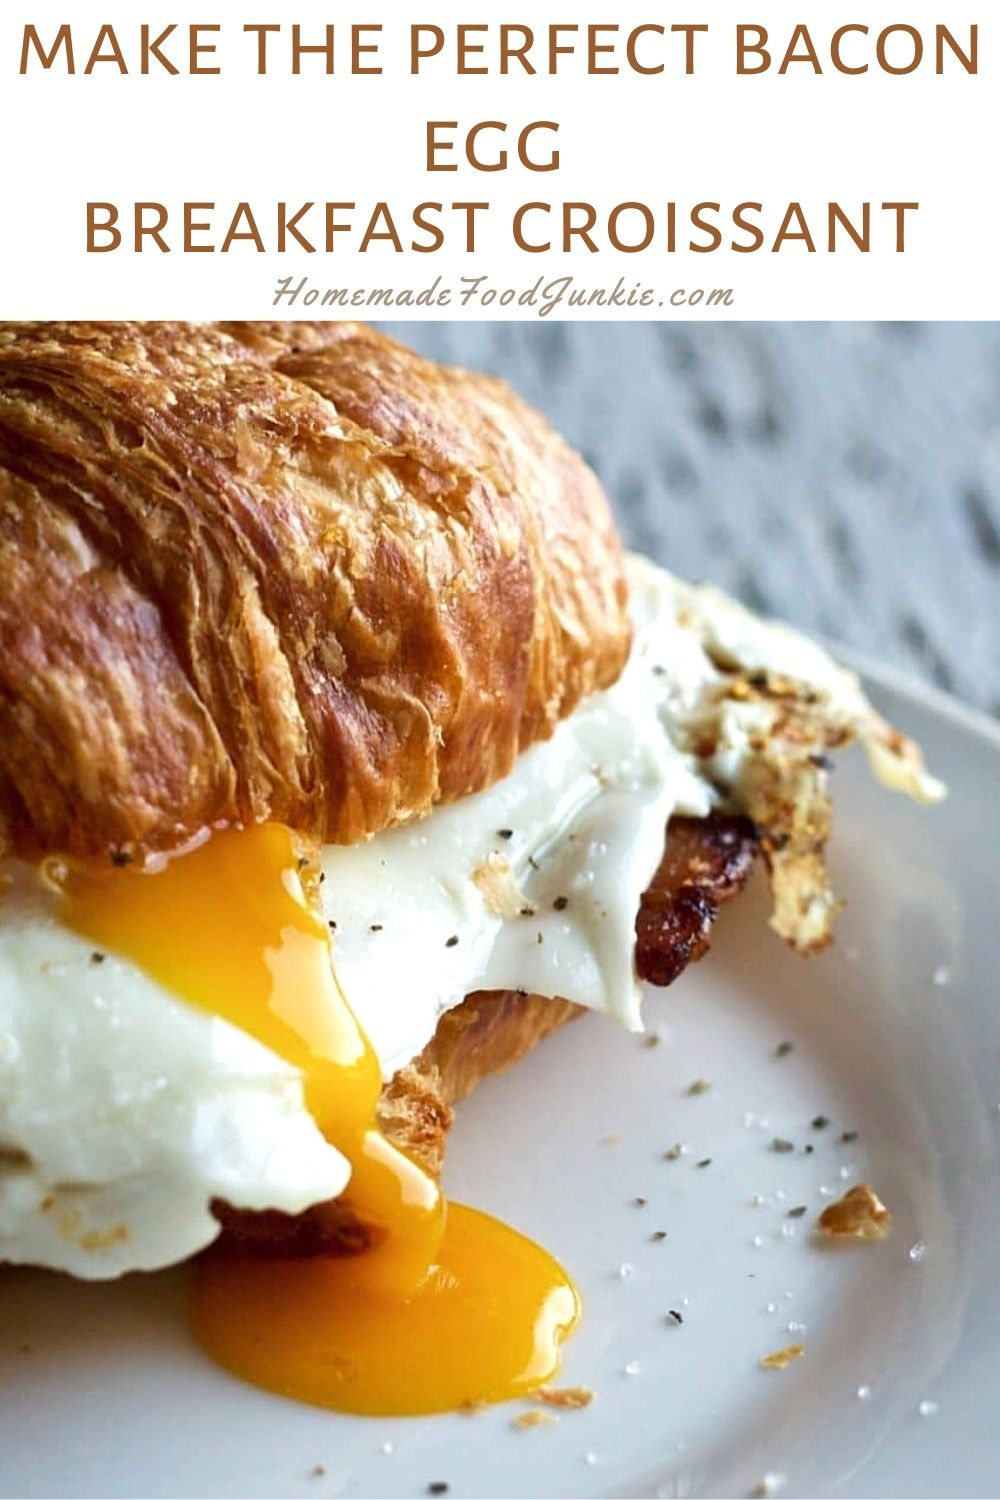 How To Make The Perfect Bacon Egg Breakfast Croissant-Pin Image